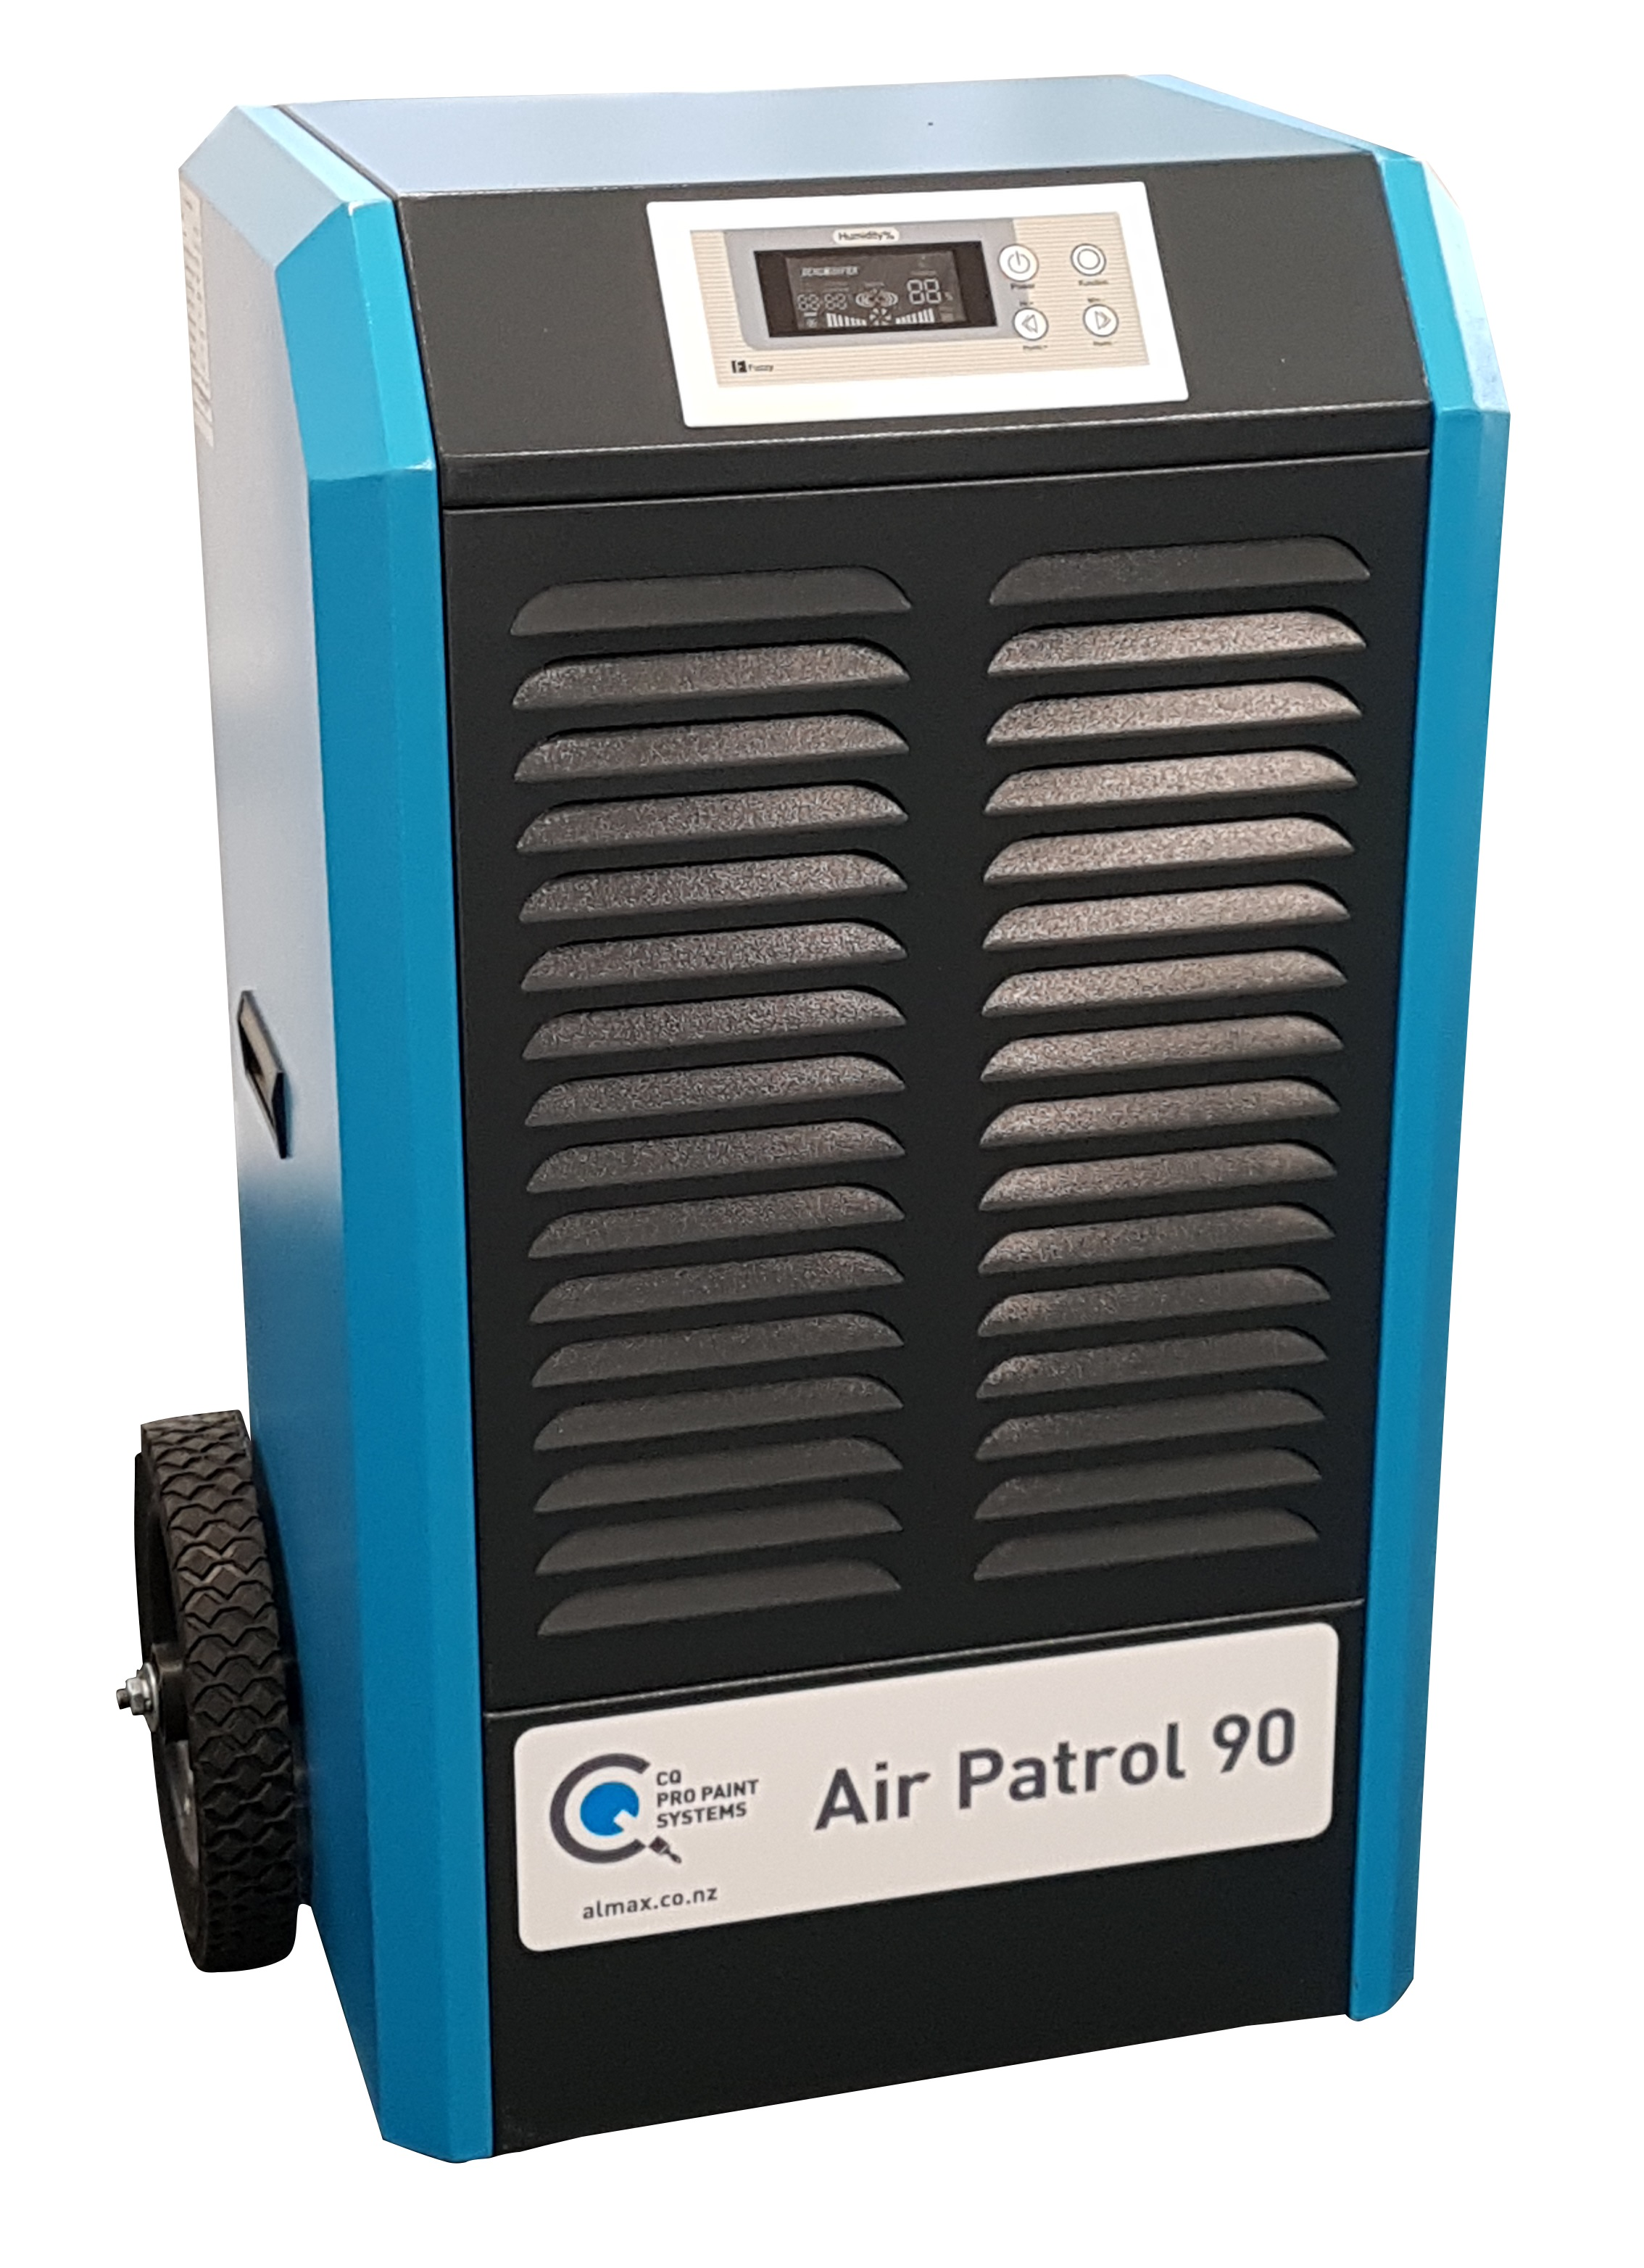 New CQ Dehumidifier - Solve your paint drying issues!